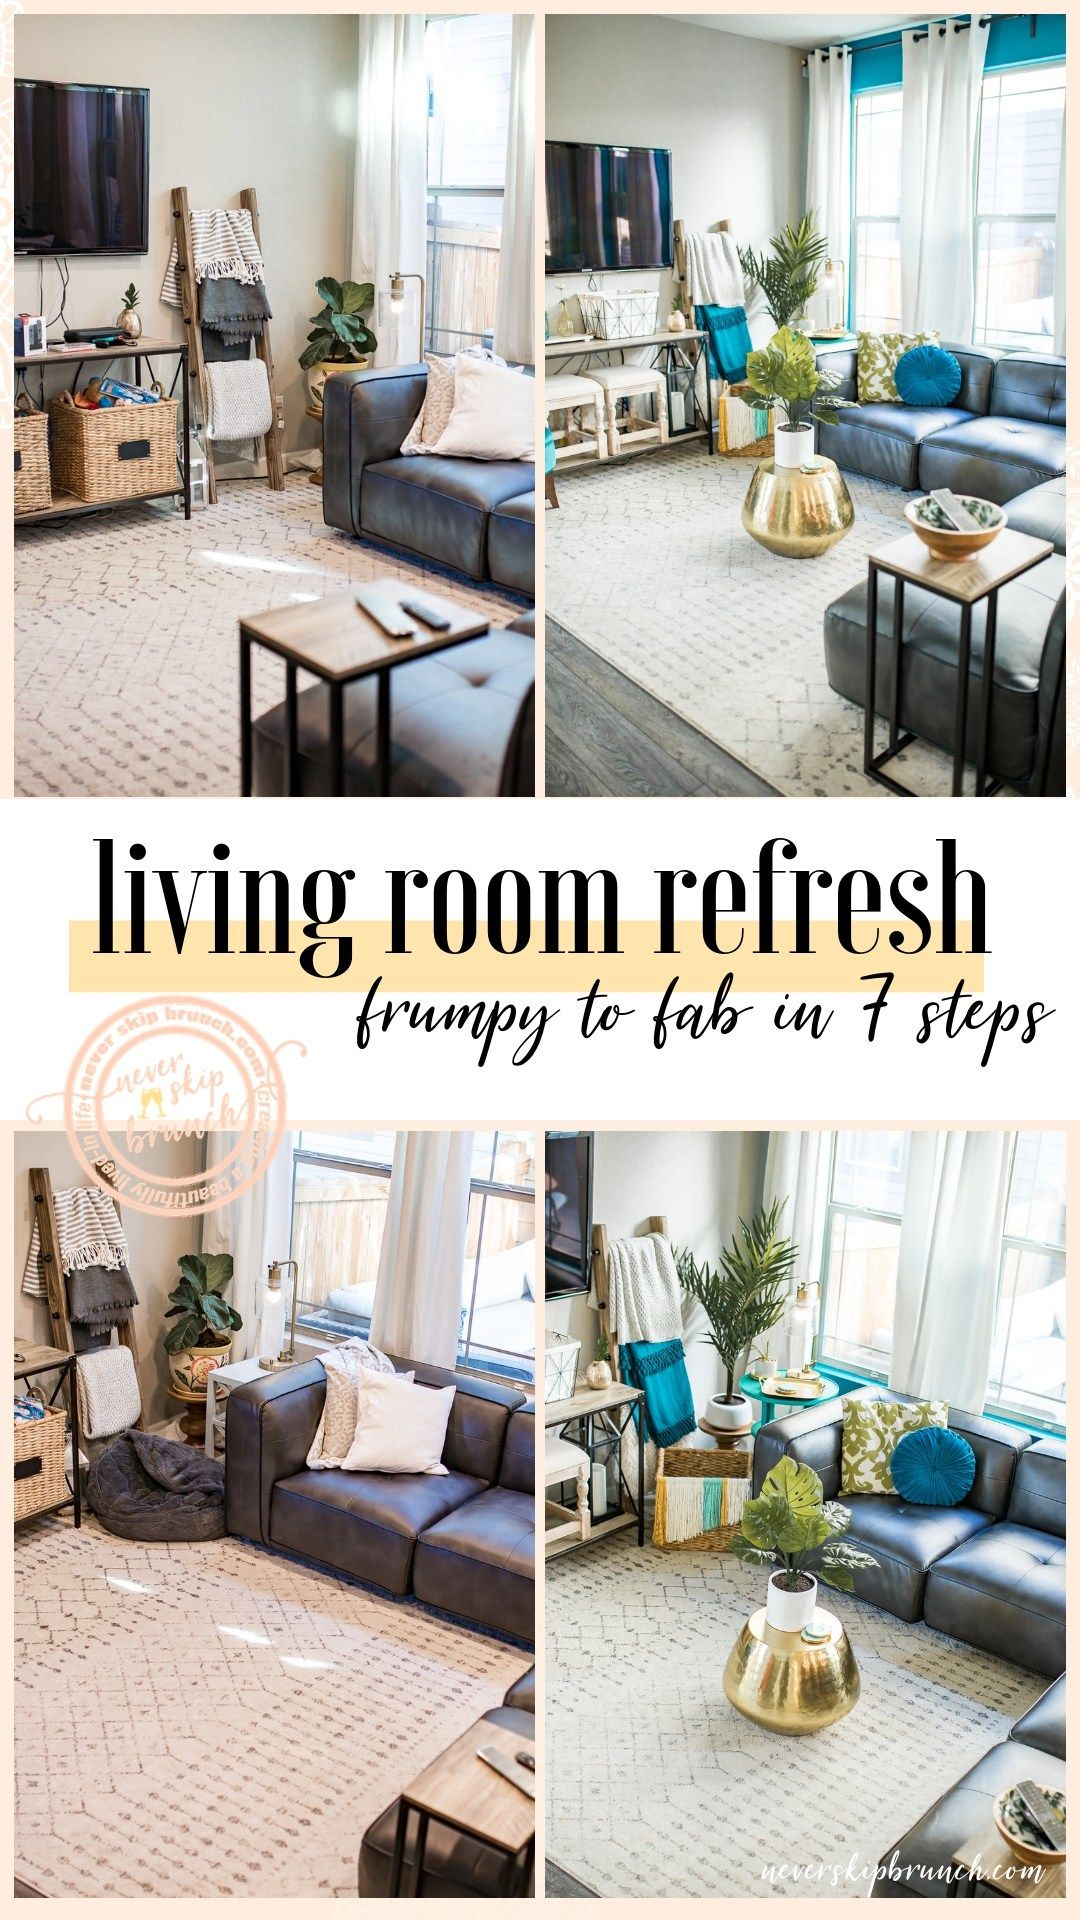 Living Room Decor Living Room Ideas Living Room Decor Ideas Living Room Designs Living Room Paint Color Diy Home Decor Projects Home Decor Living Room